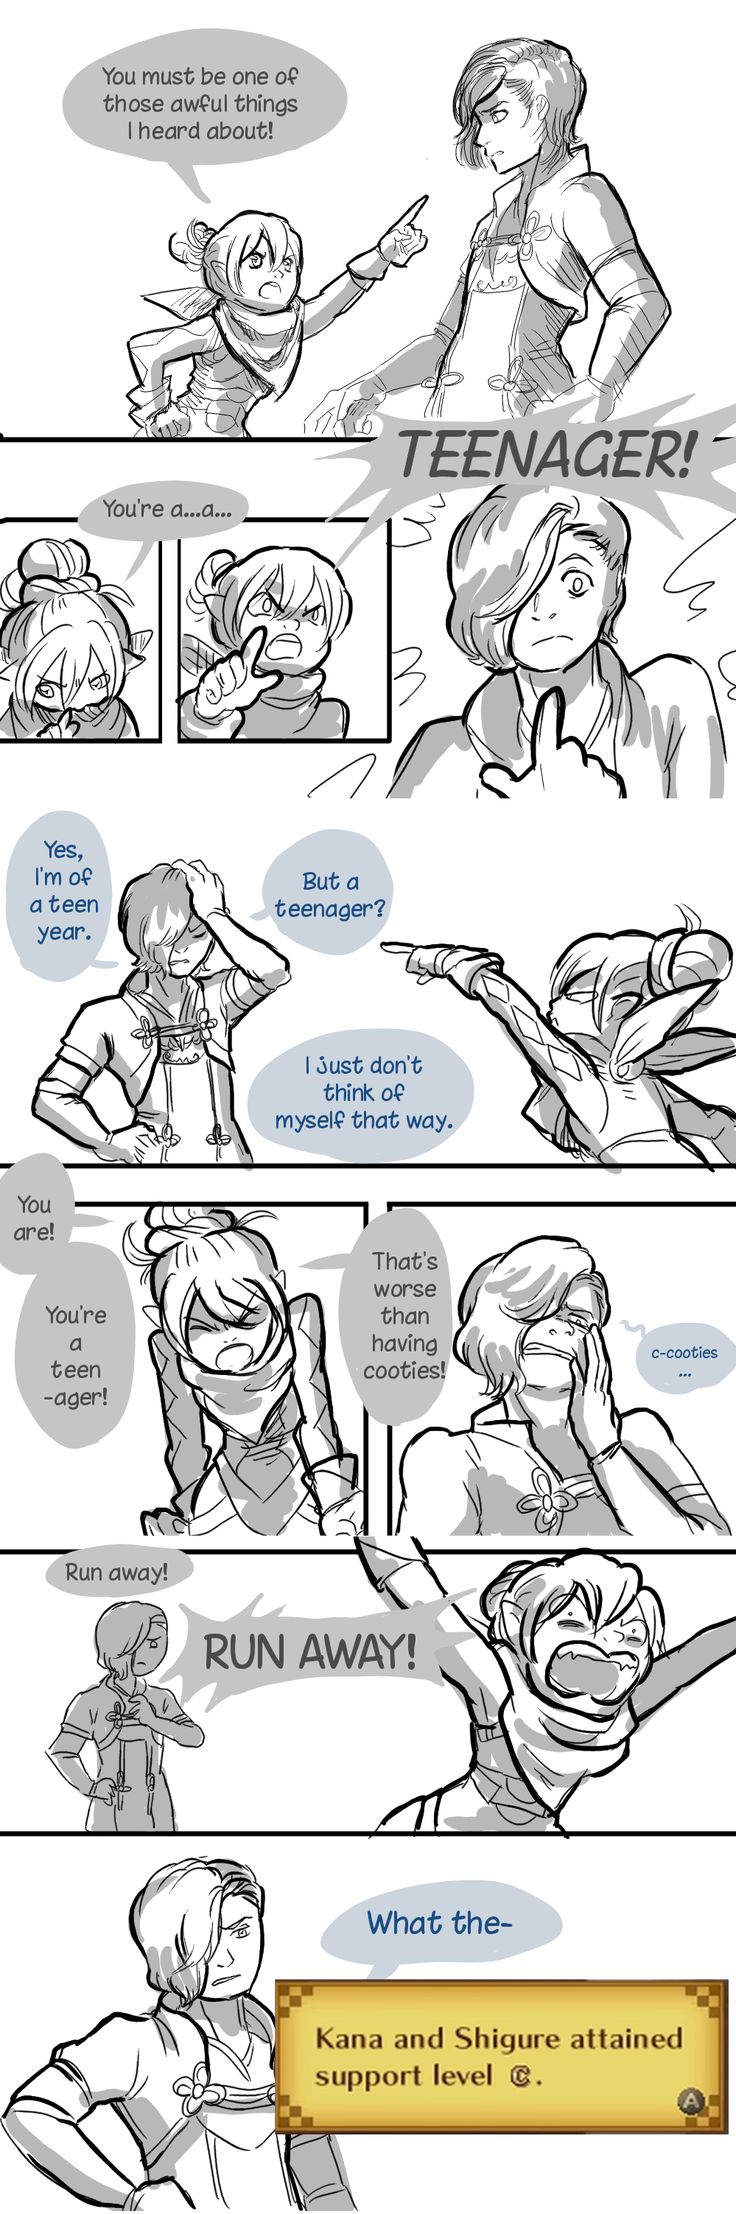 Fire Emblem Fates - Kana hates teenagers [Full comic]